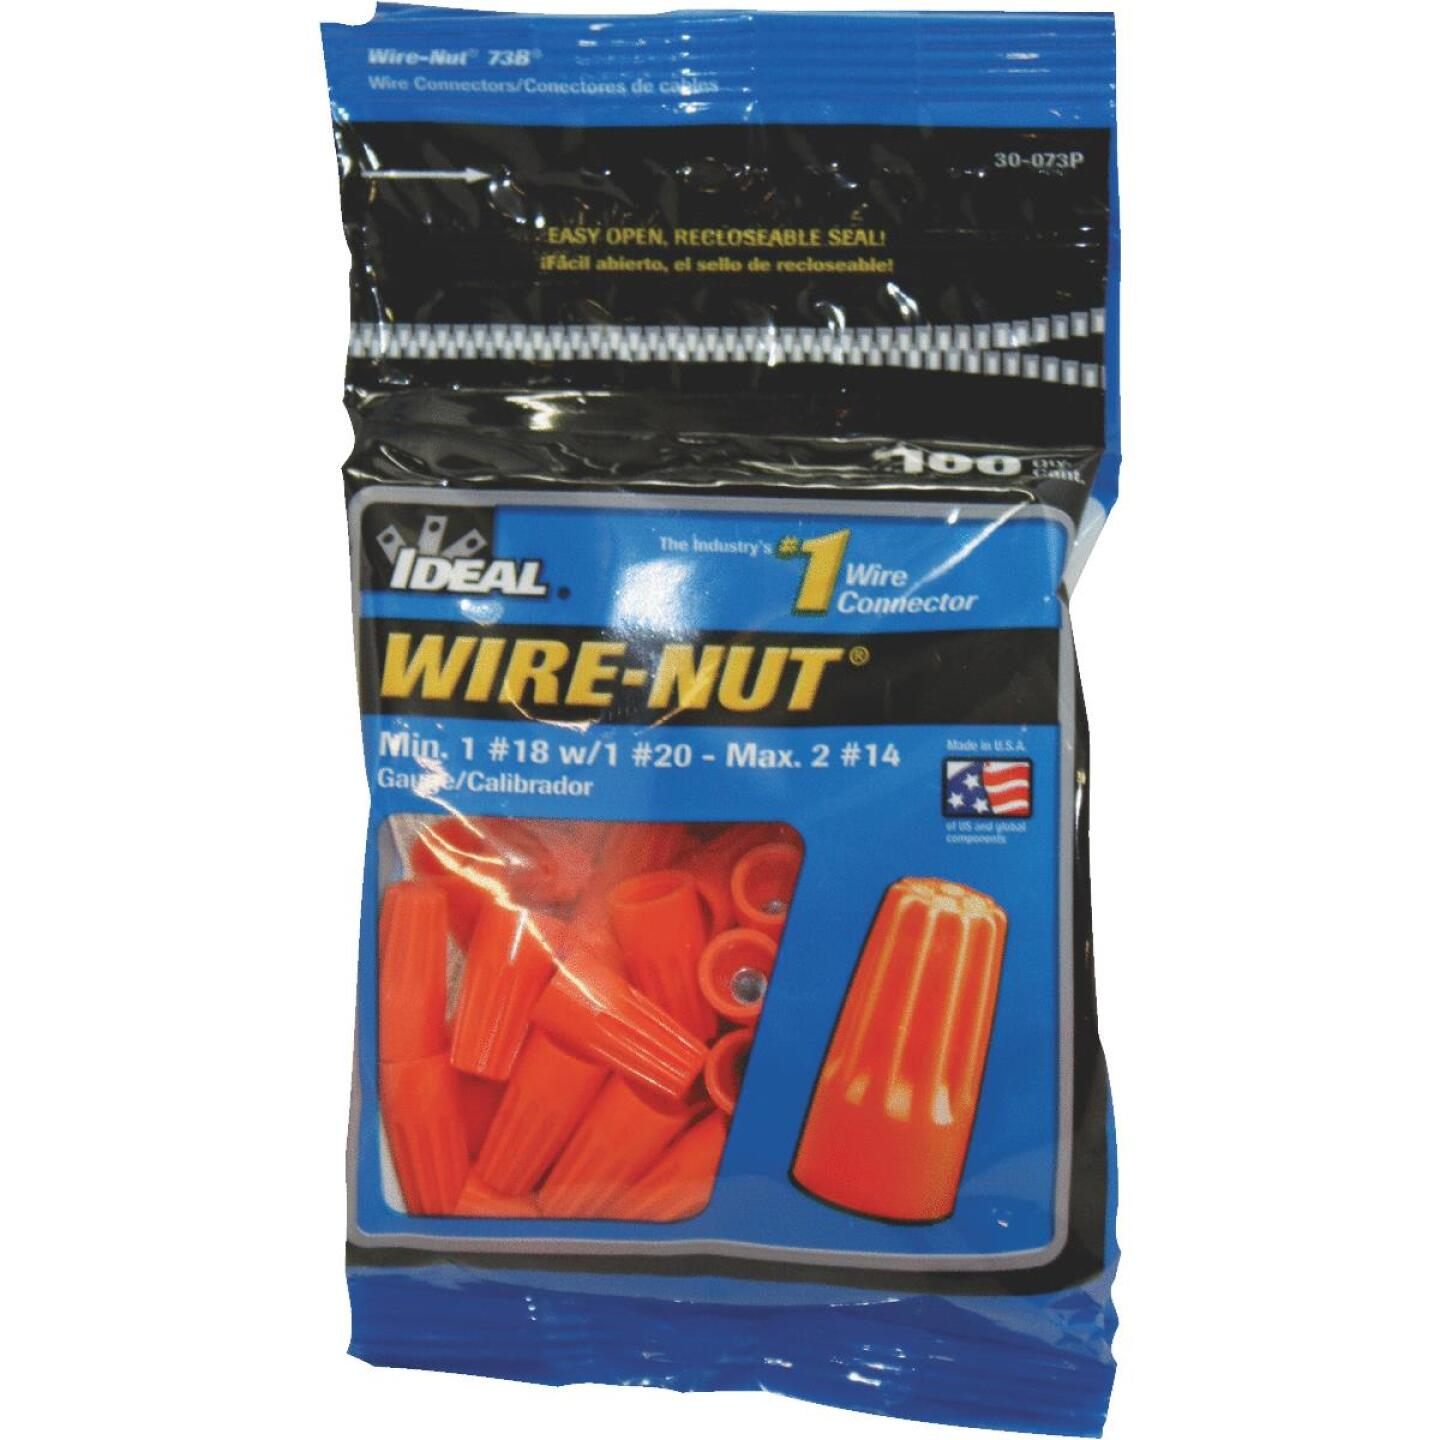 Ideal Wire-Nut Small Orange Copper to Copper Wire Connector (100-Pack) Image 1